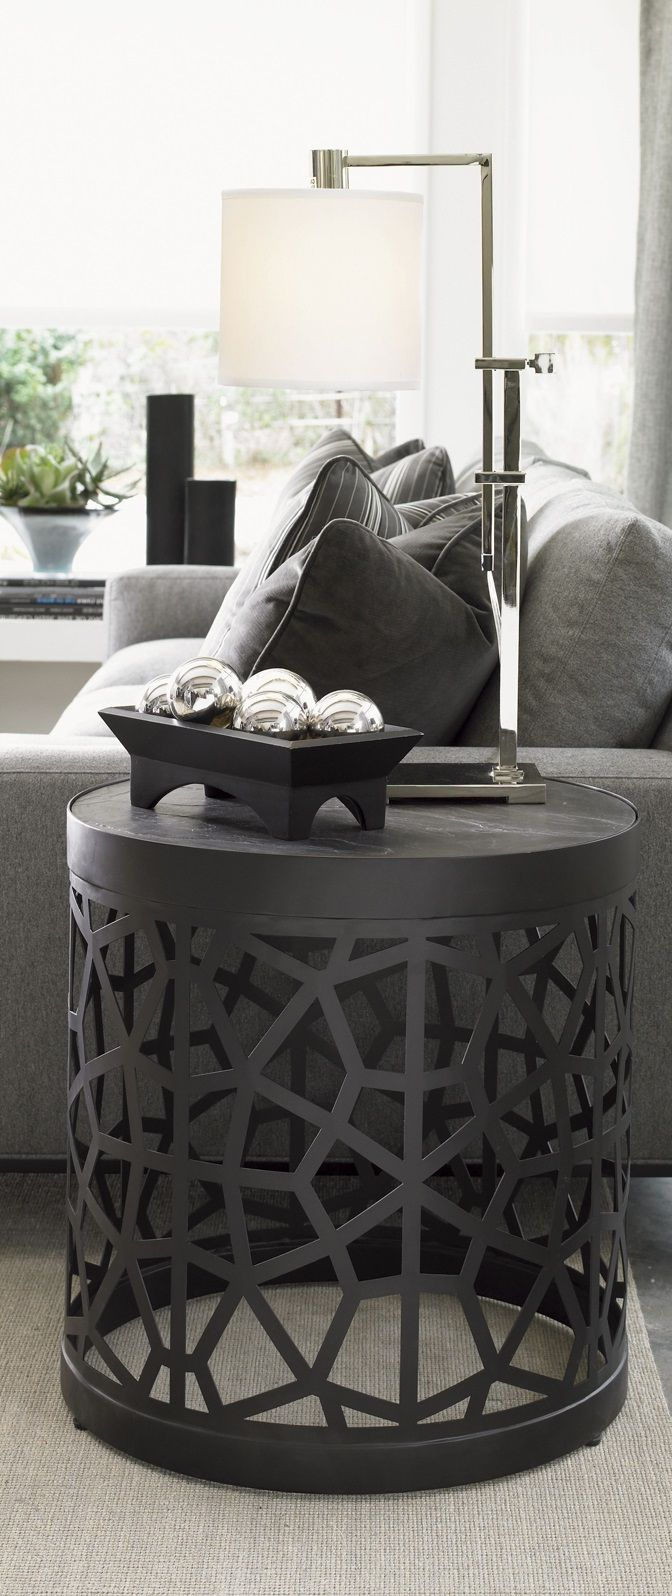 Side Tables Accent Tables End Tables Interiordesign Casegoodsideas Moder Home Decor Interior Design Id Home Interior Design Living Room Designs Luxury Decor